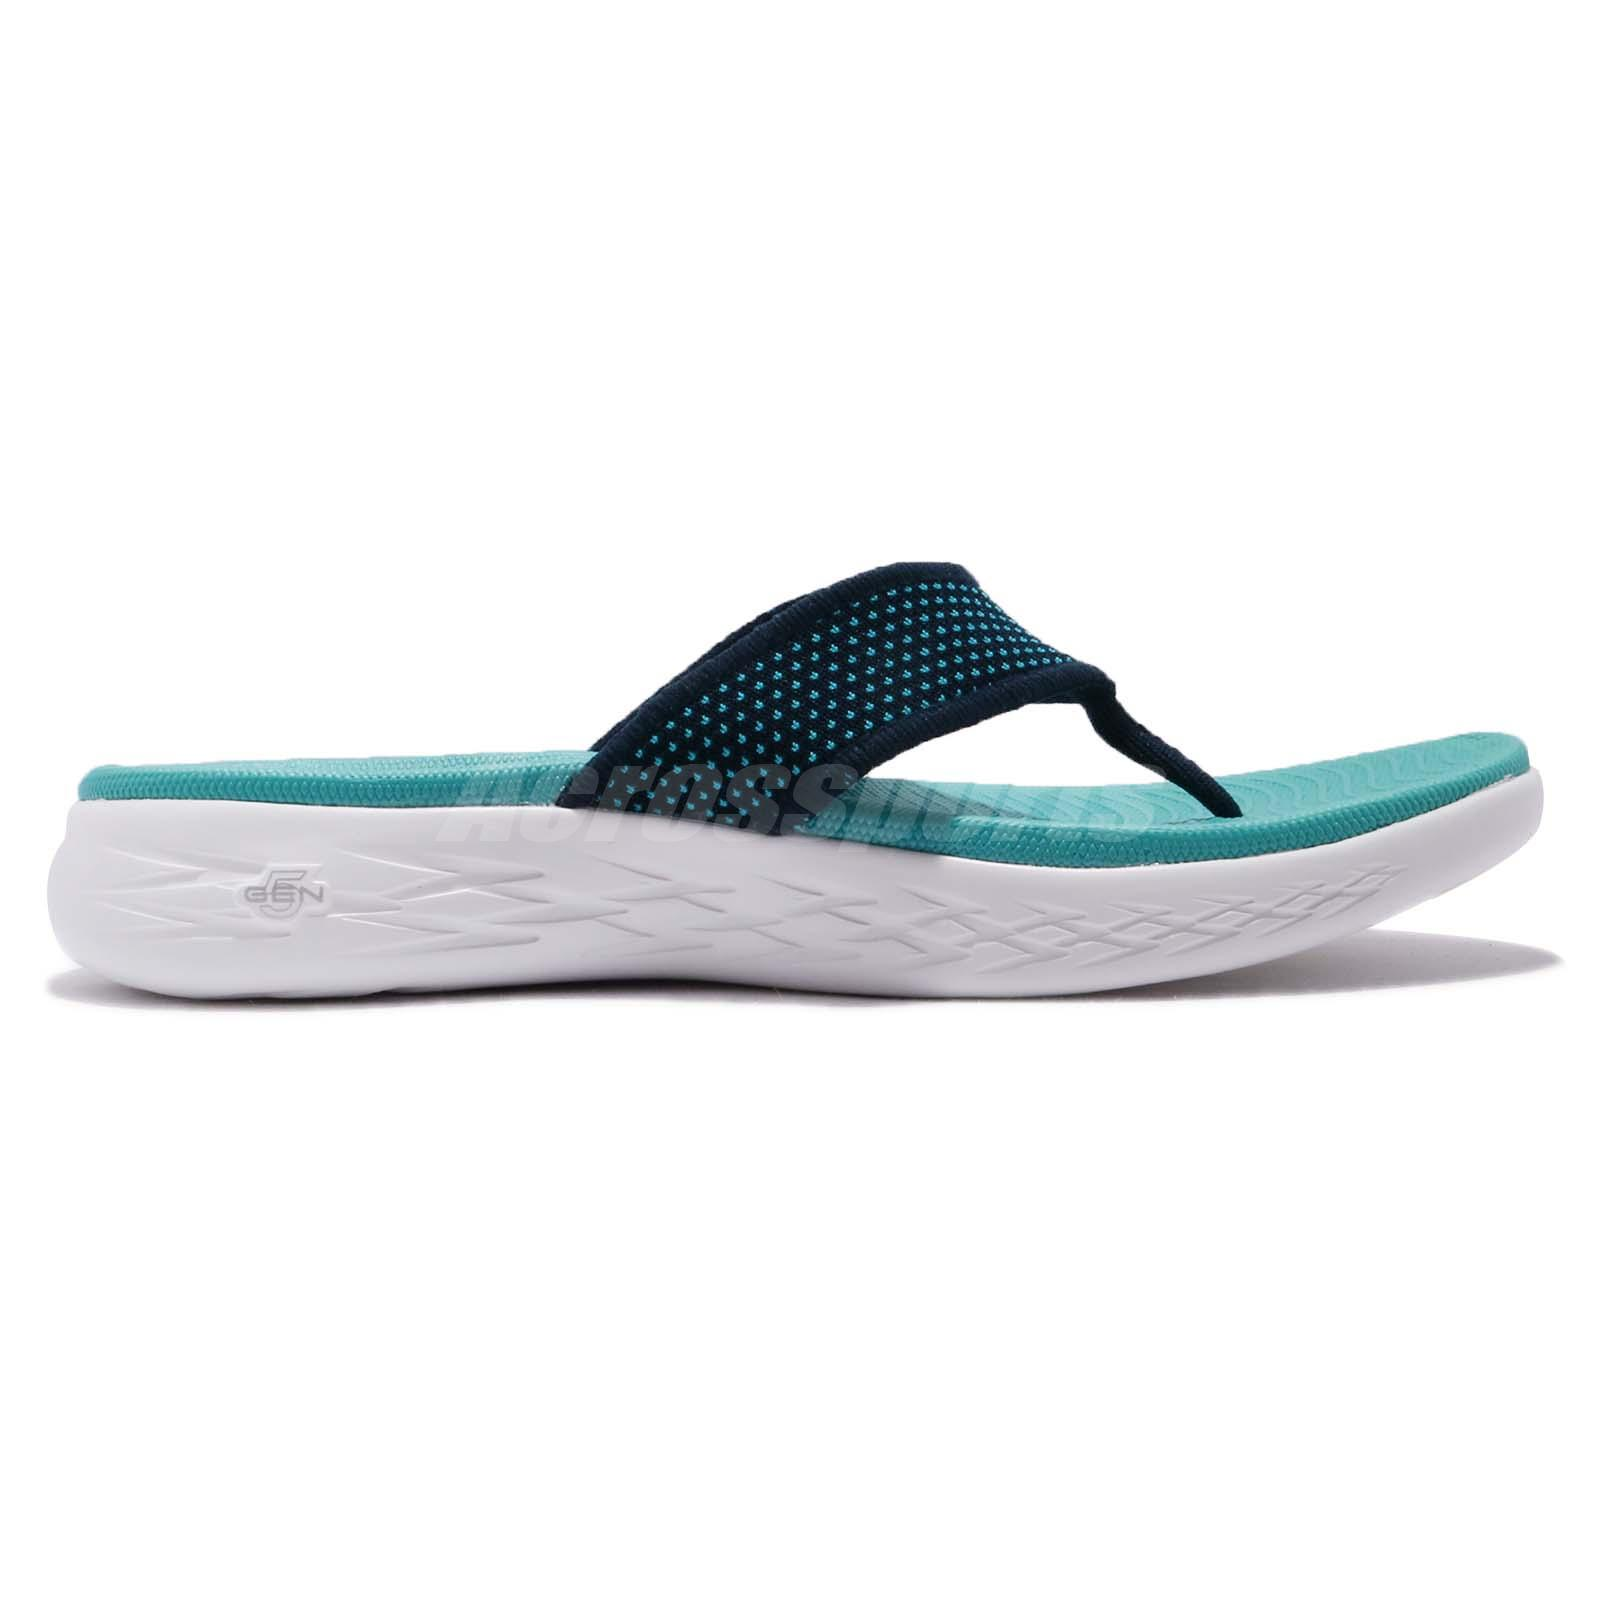 63132f34 Skechers On-The-Go 600 Navy Turquoise Women Sandal Thong Flip-Flops ...